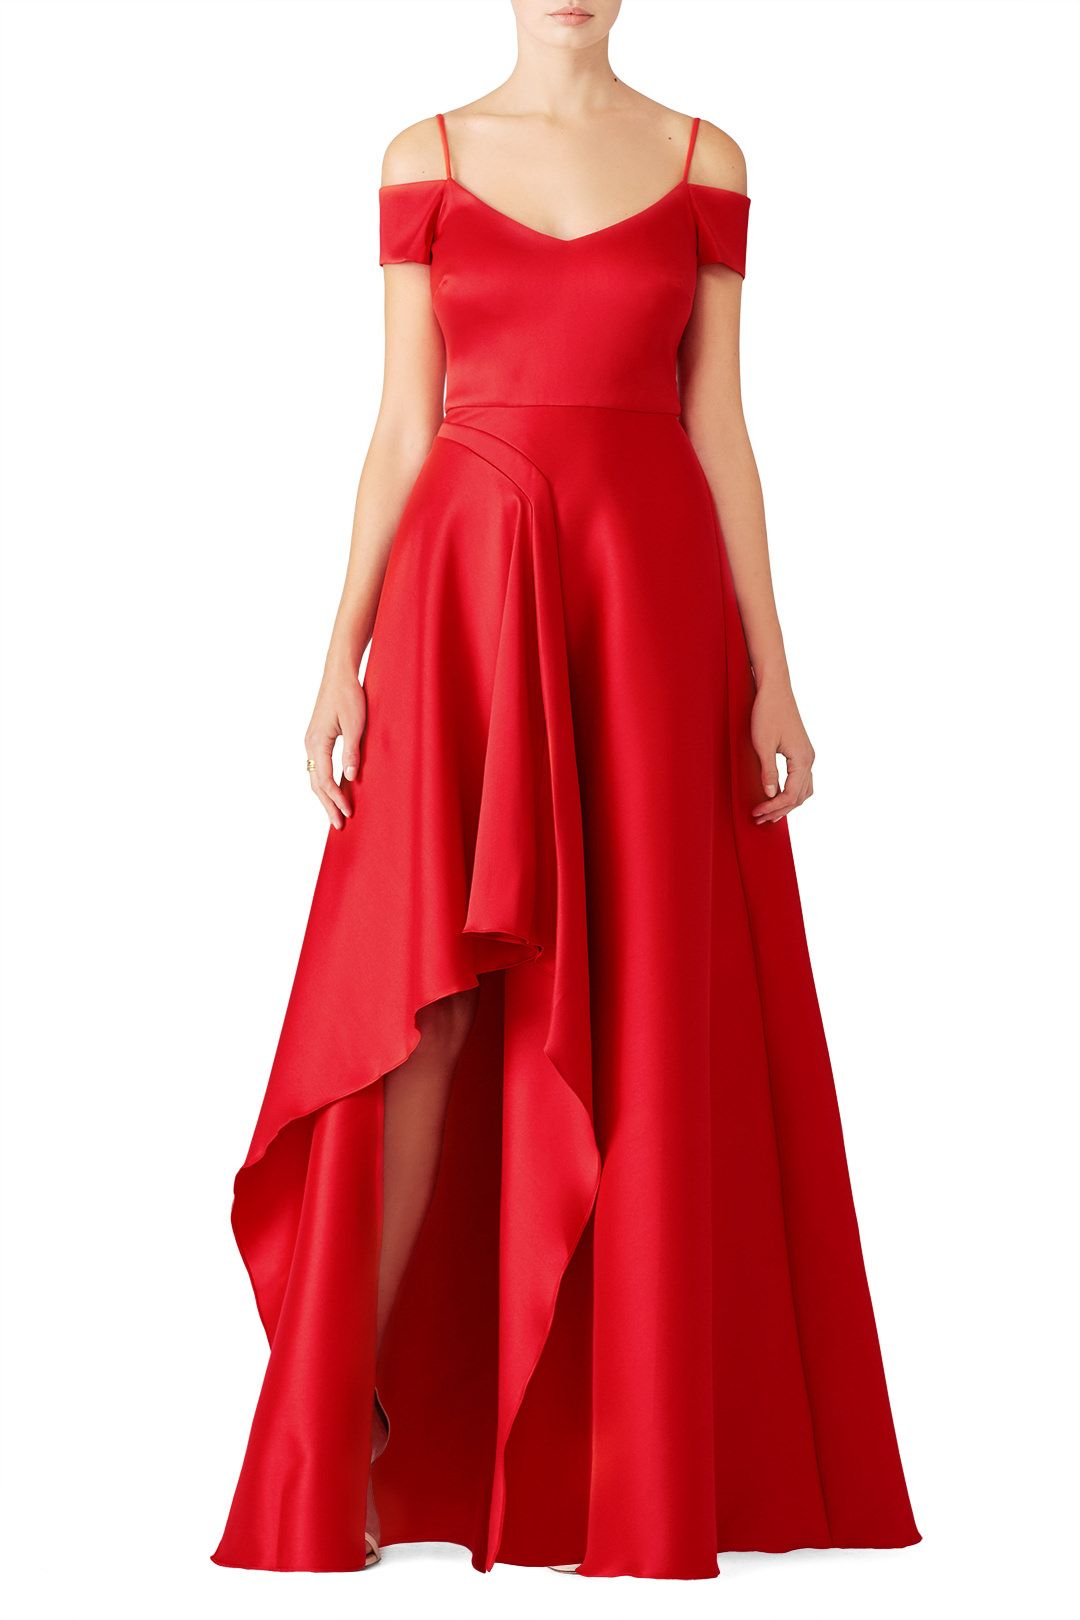 0c1a31b00bc6b Rent Red Asymmetrical Gown by Badgley Mischka for $145 only at Rent the  Runway.